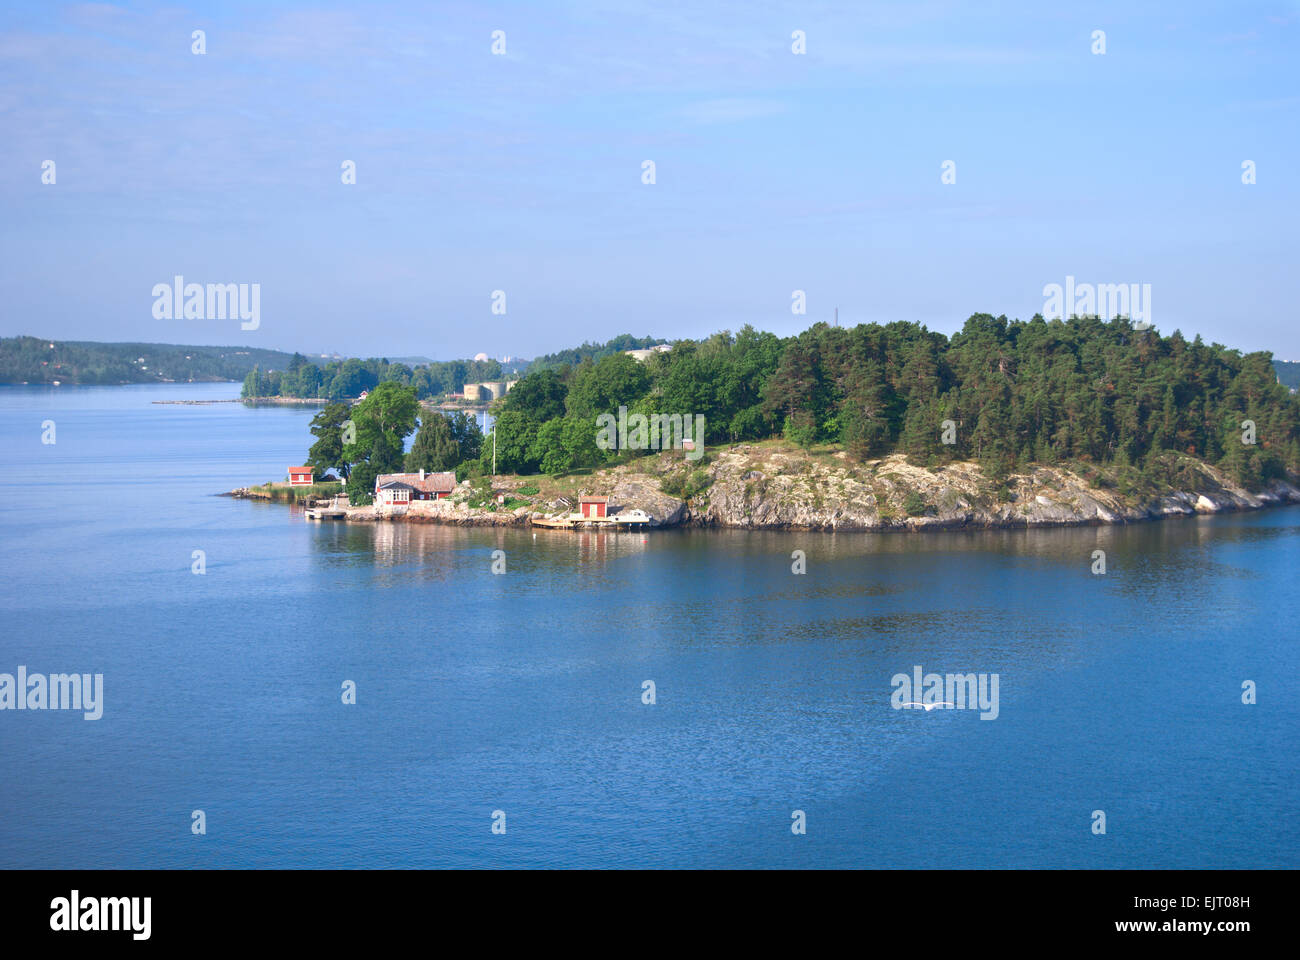 Comfortable cottage on a small rocky island in the Stockholm archipelago, Baltic Sea, Sweden - Stock Image